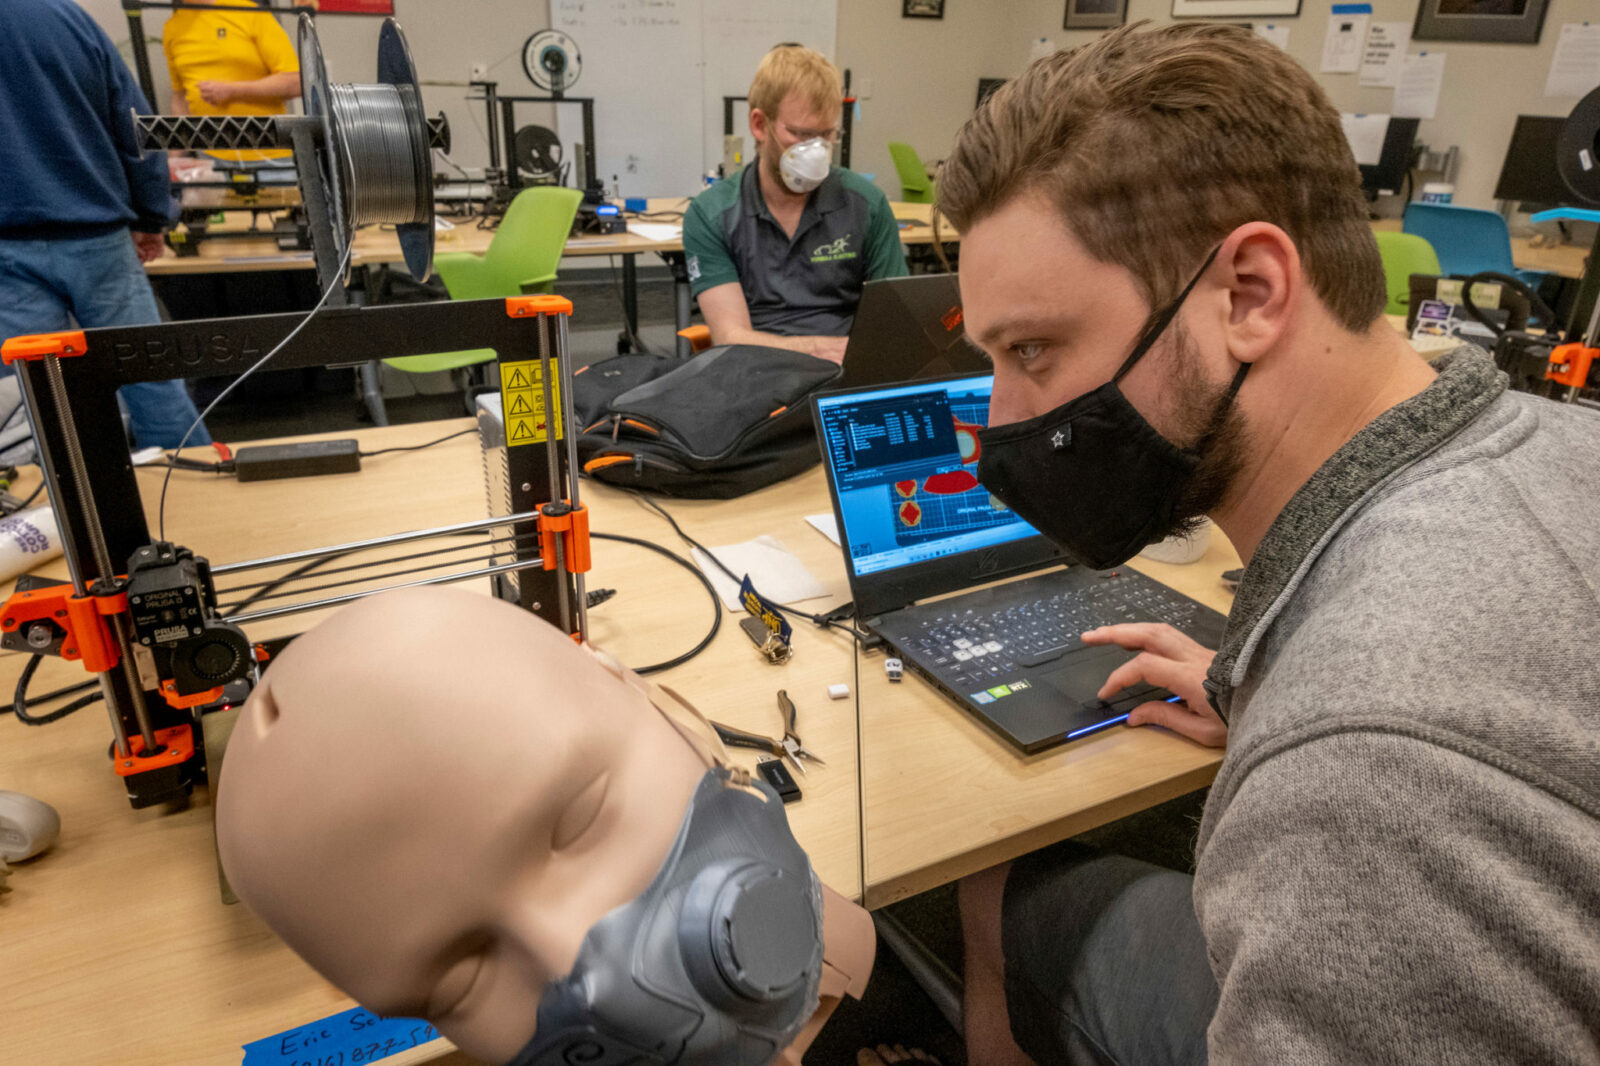 Eric Schneider, a senior aerospace engineering student at Missouri S&T, tests the fit of a prototype 3-D printed surgical mask on the head of a mannequin in the Kummer Student Design Center at S&T. In the background is Stephen Williams, an S&T mechanical engineering student. The university is helping Phelps Health prepare for coronavirus patients by 3-D printing masks and face shield brackets. Photo by Tom Wagner/Missouri S&T.